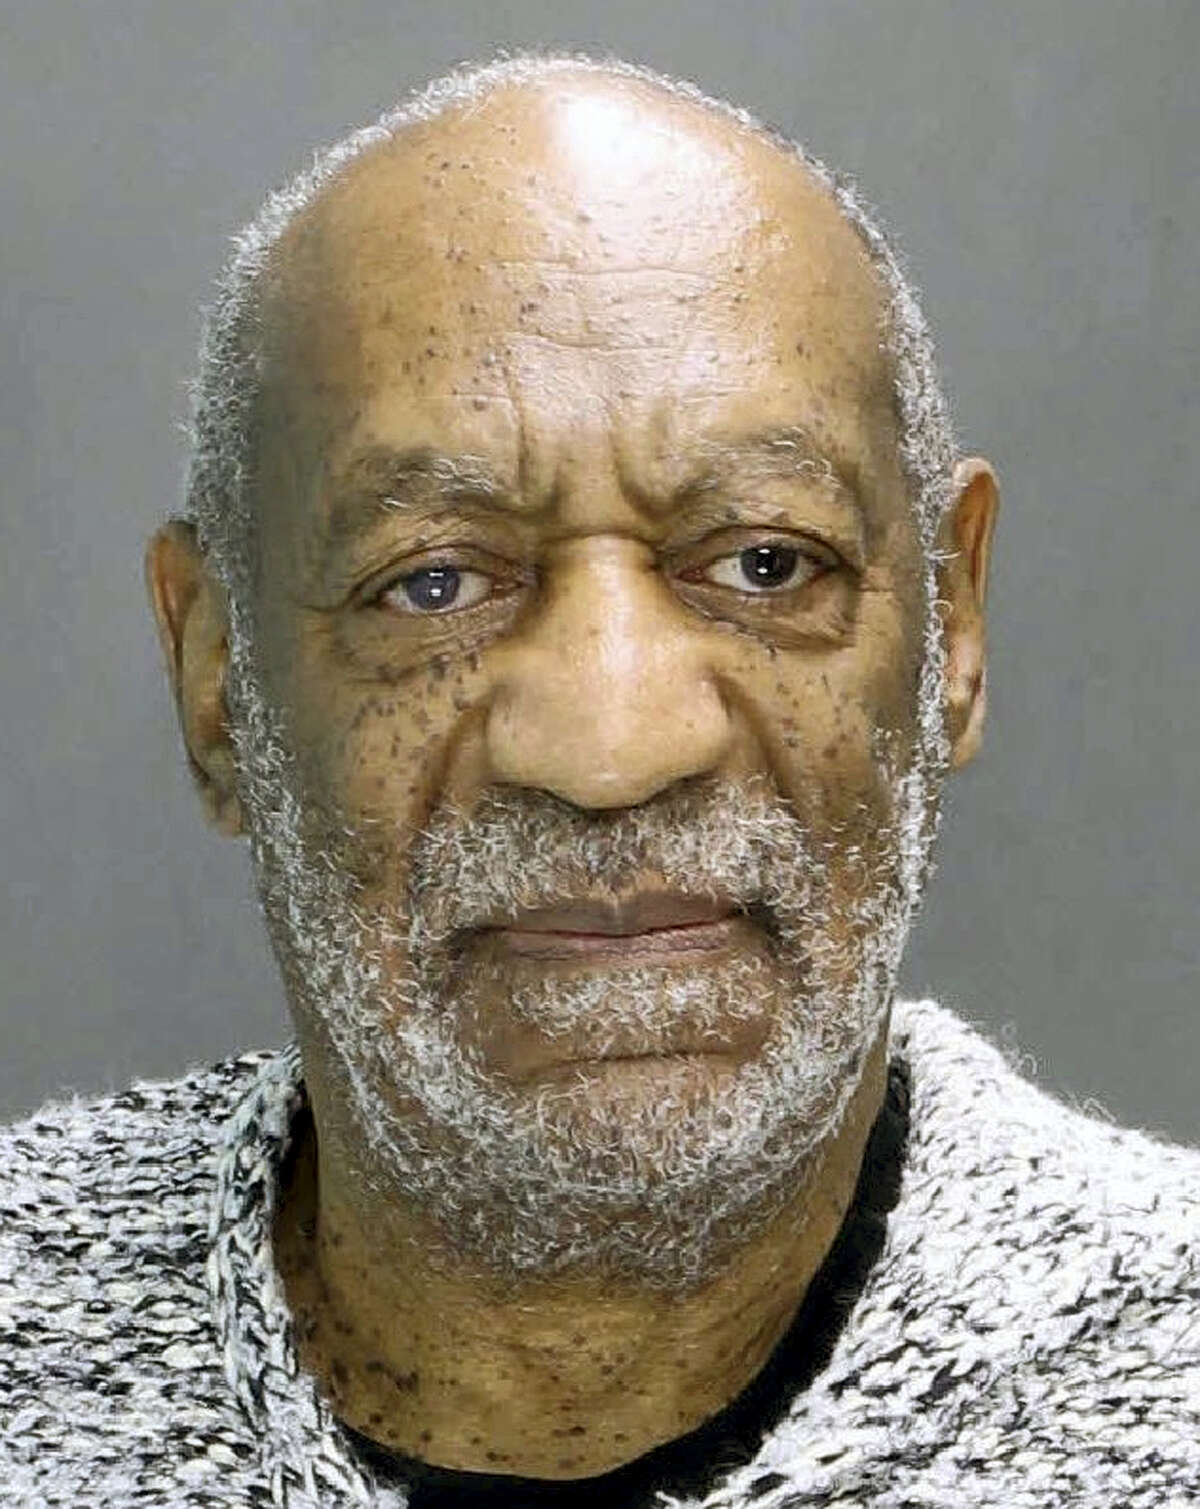 This booking photograph released by the Montgomery County District Attorney's Office shows Bill Cosby, who was arrested and charged Wednesday, Dec. 30, 2015, in district court in Elkins Park, Pa., with aggravated indecent assault. Cosby is accused of drugging and sexually assaulting a woman at his home in January 2004.